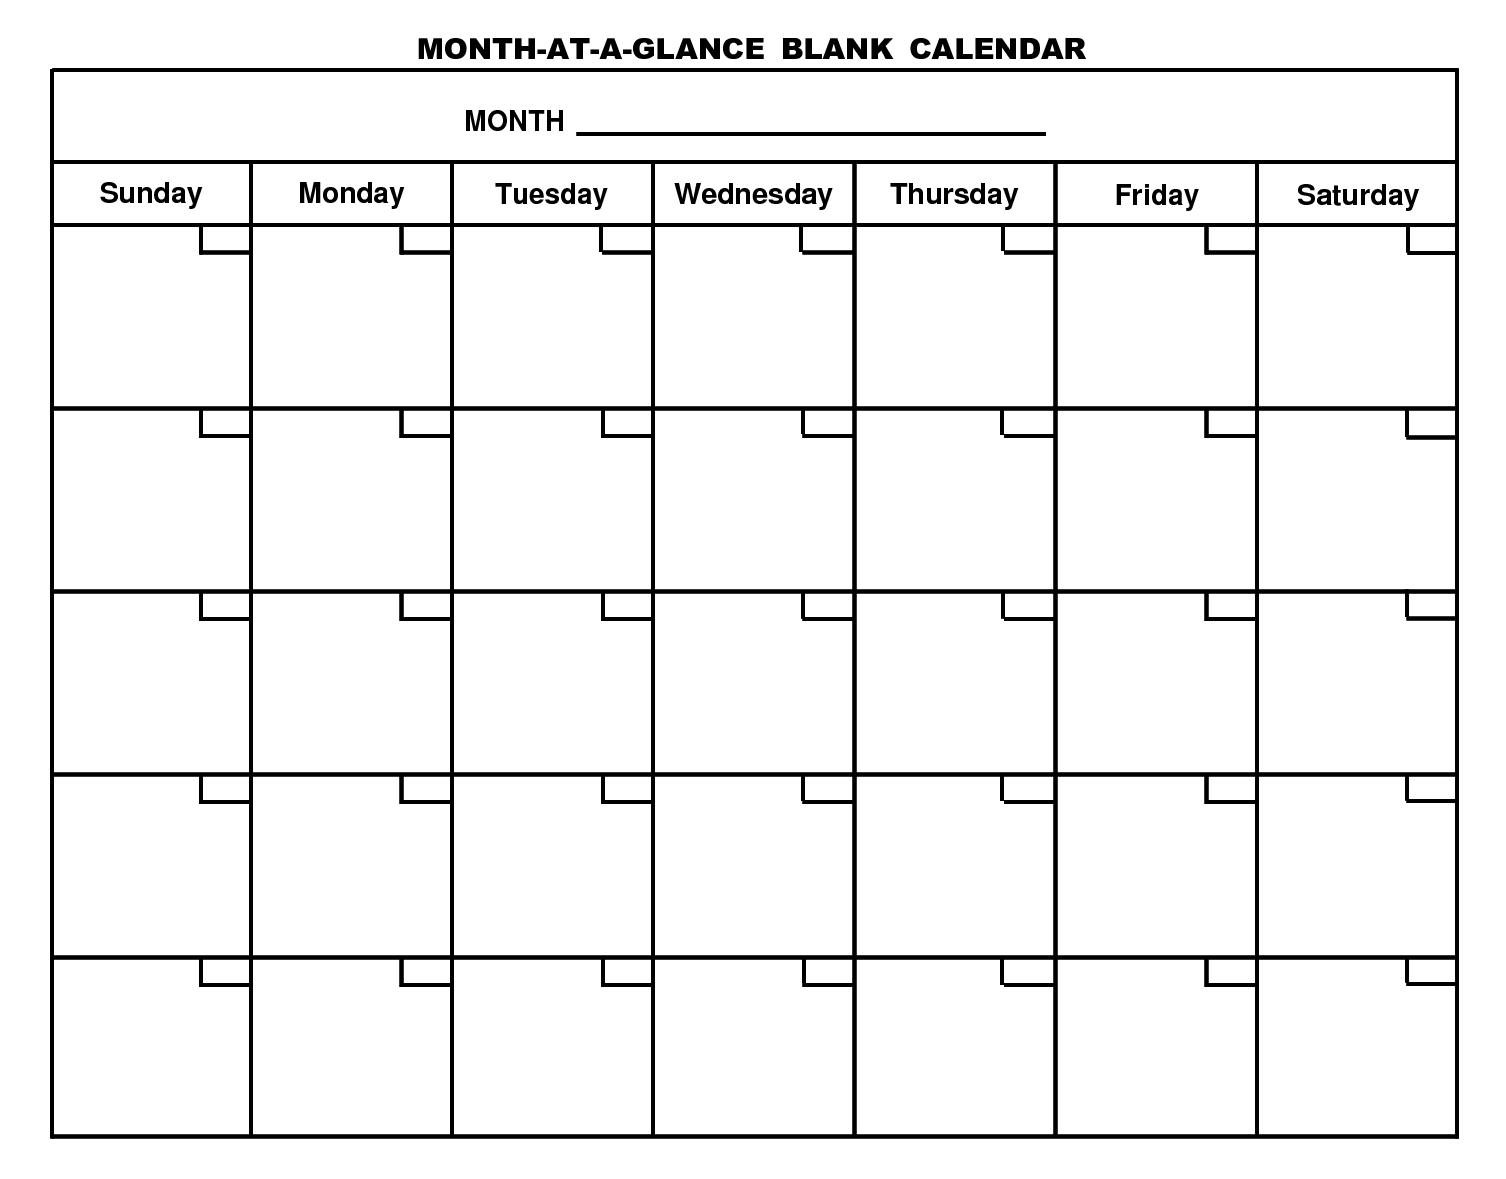 For Month At A Glance Blank Calendar Template - Free-Month At A Glance Blank Calendar Template